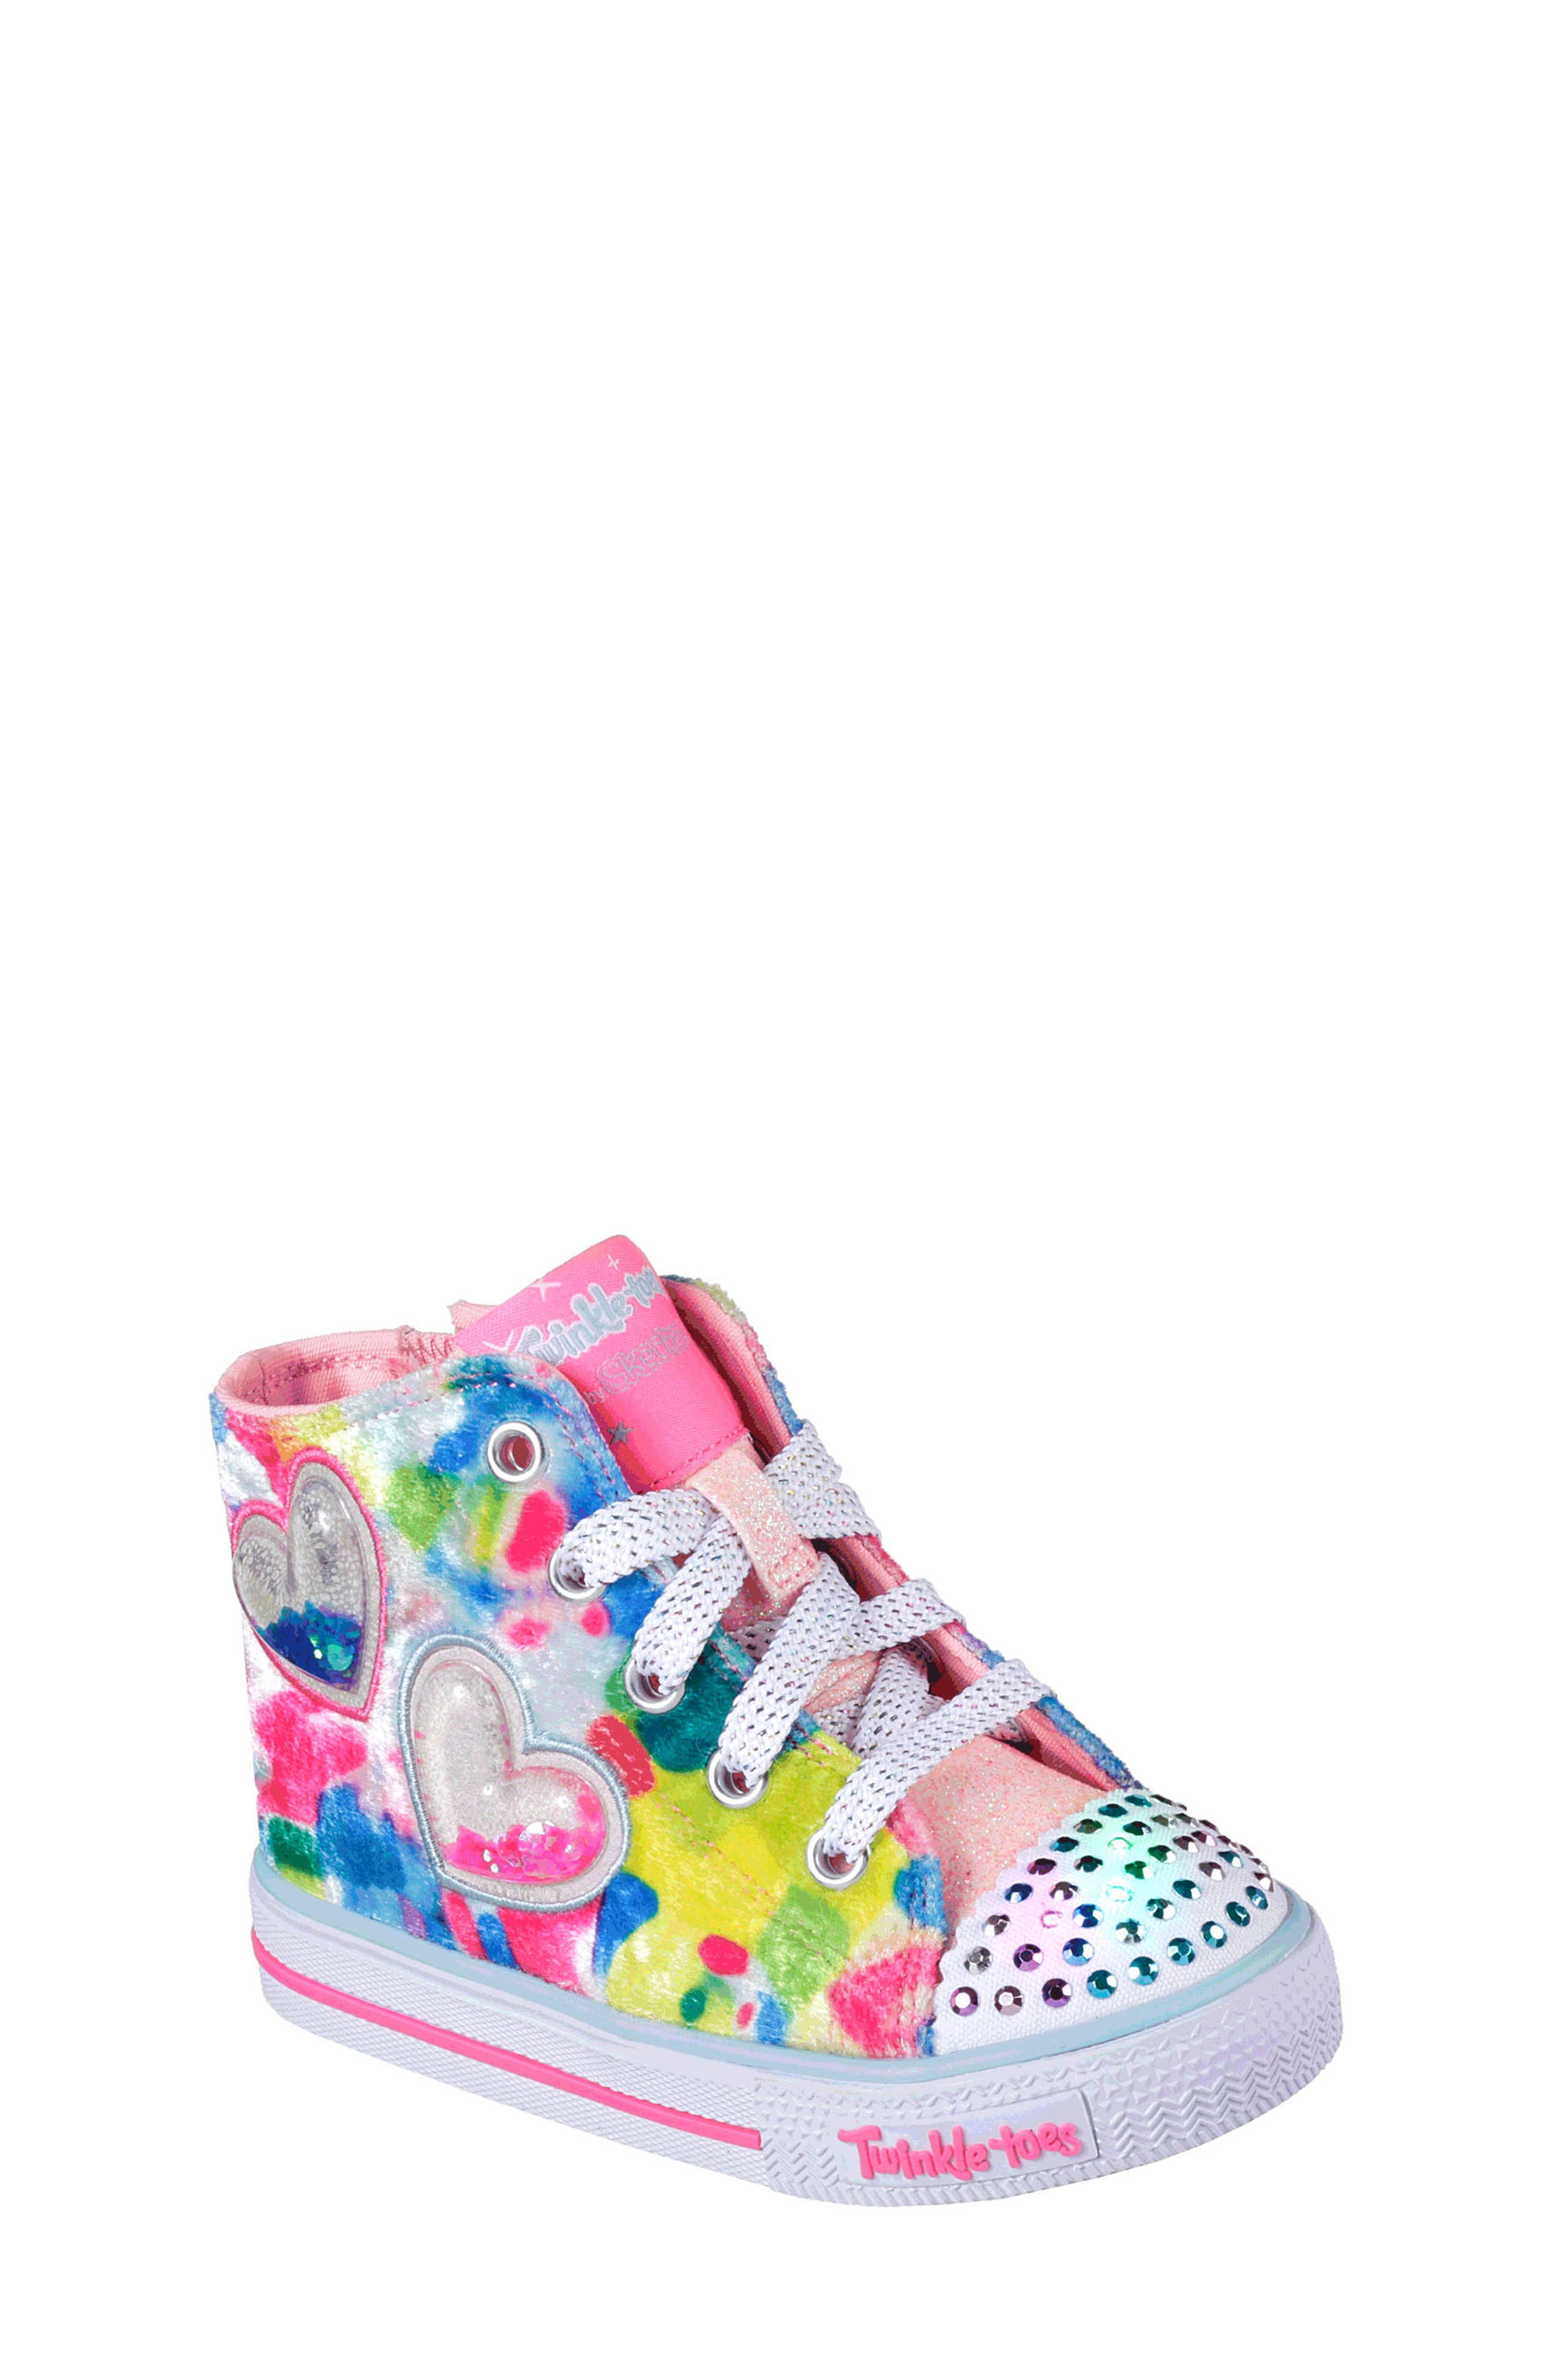 Twinkle Toes Shuffles Light-Up High Top Sneaker,                         Main,                         color, Hot Pink/ Multi Velvet